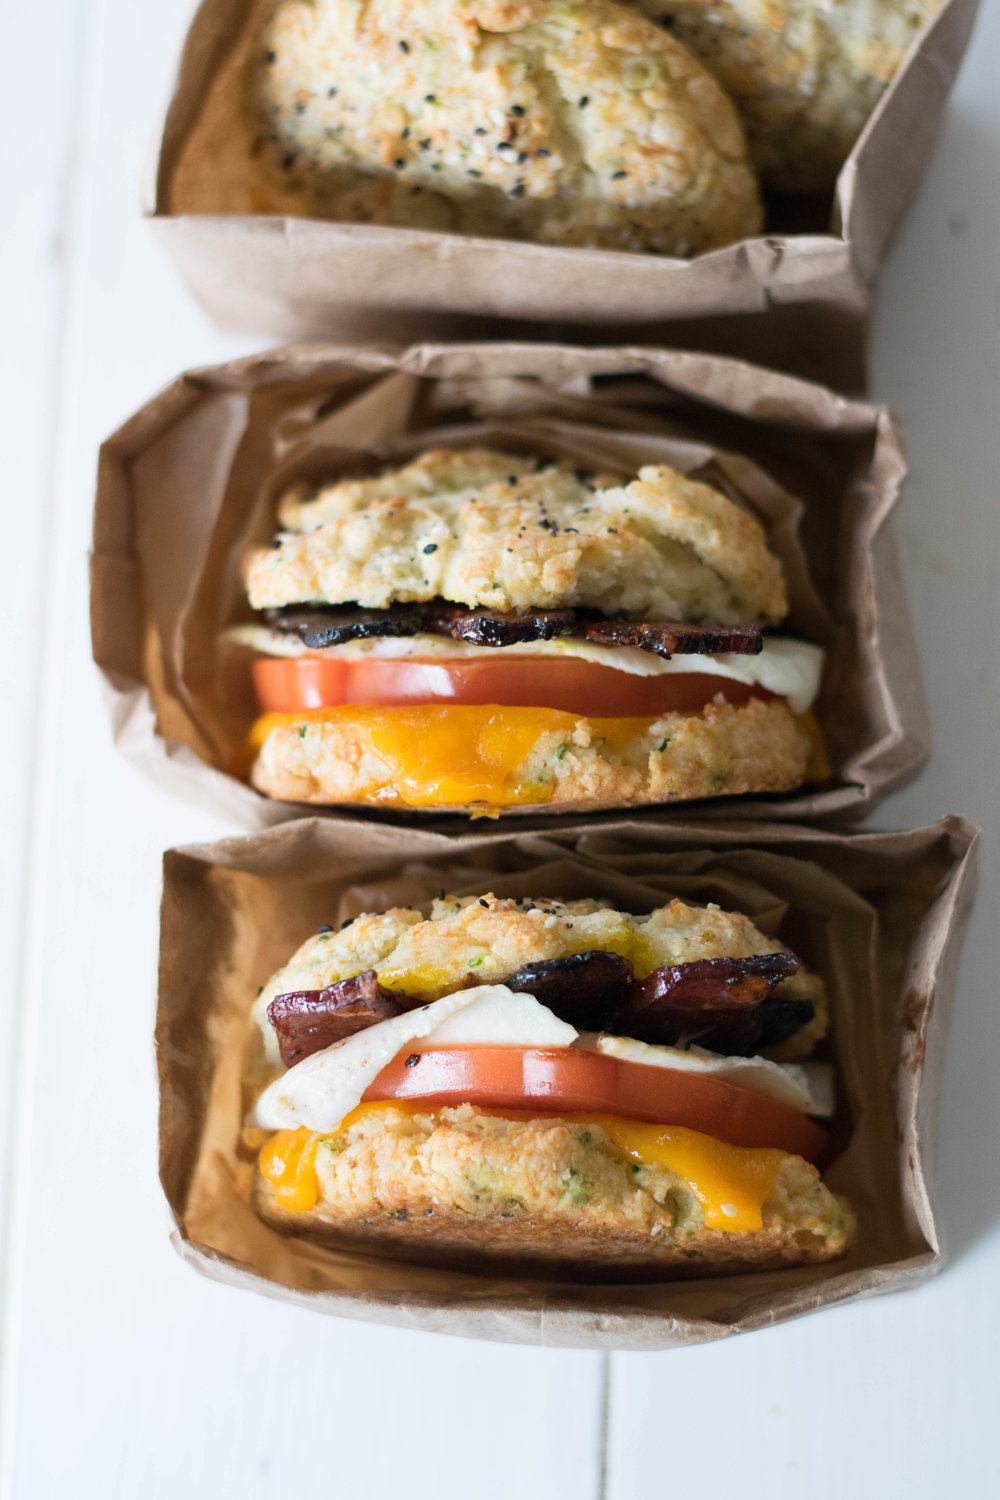 Brunchy Biscuit Sandwiches with Espresso Glazed Bacon | All Purpose Flour Child